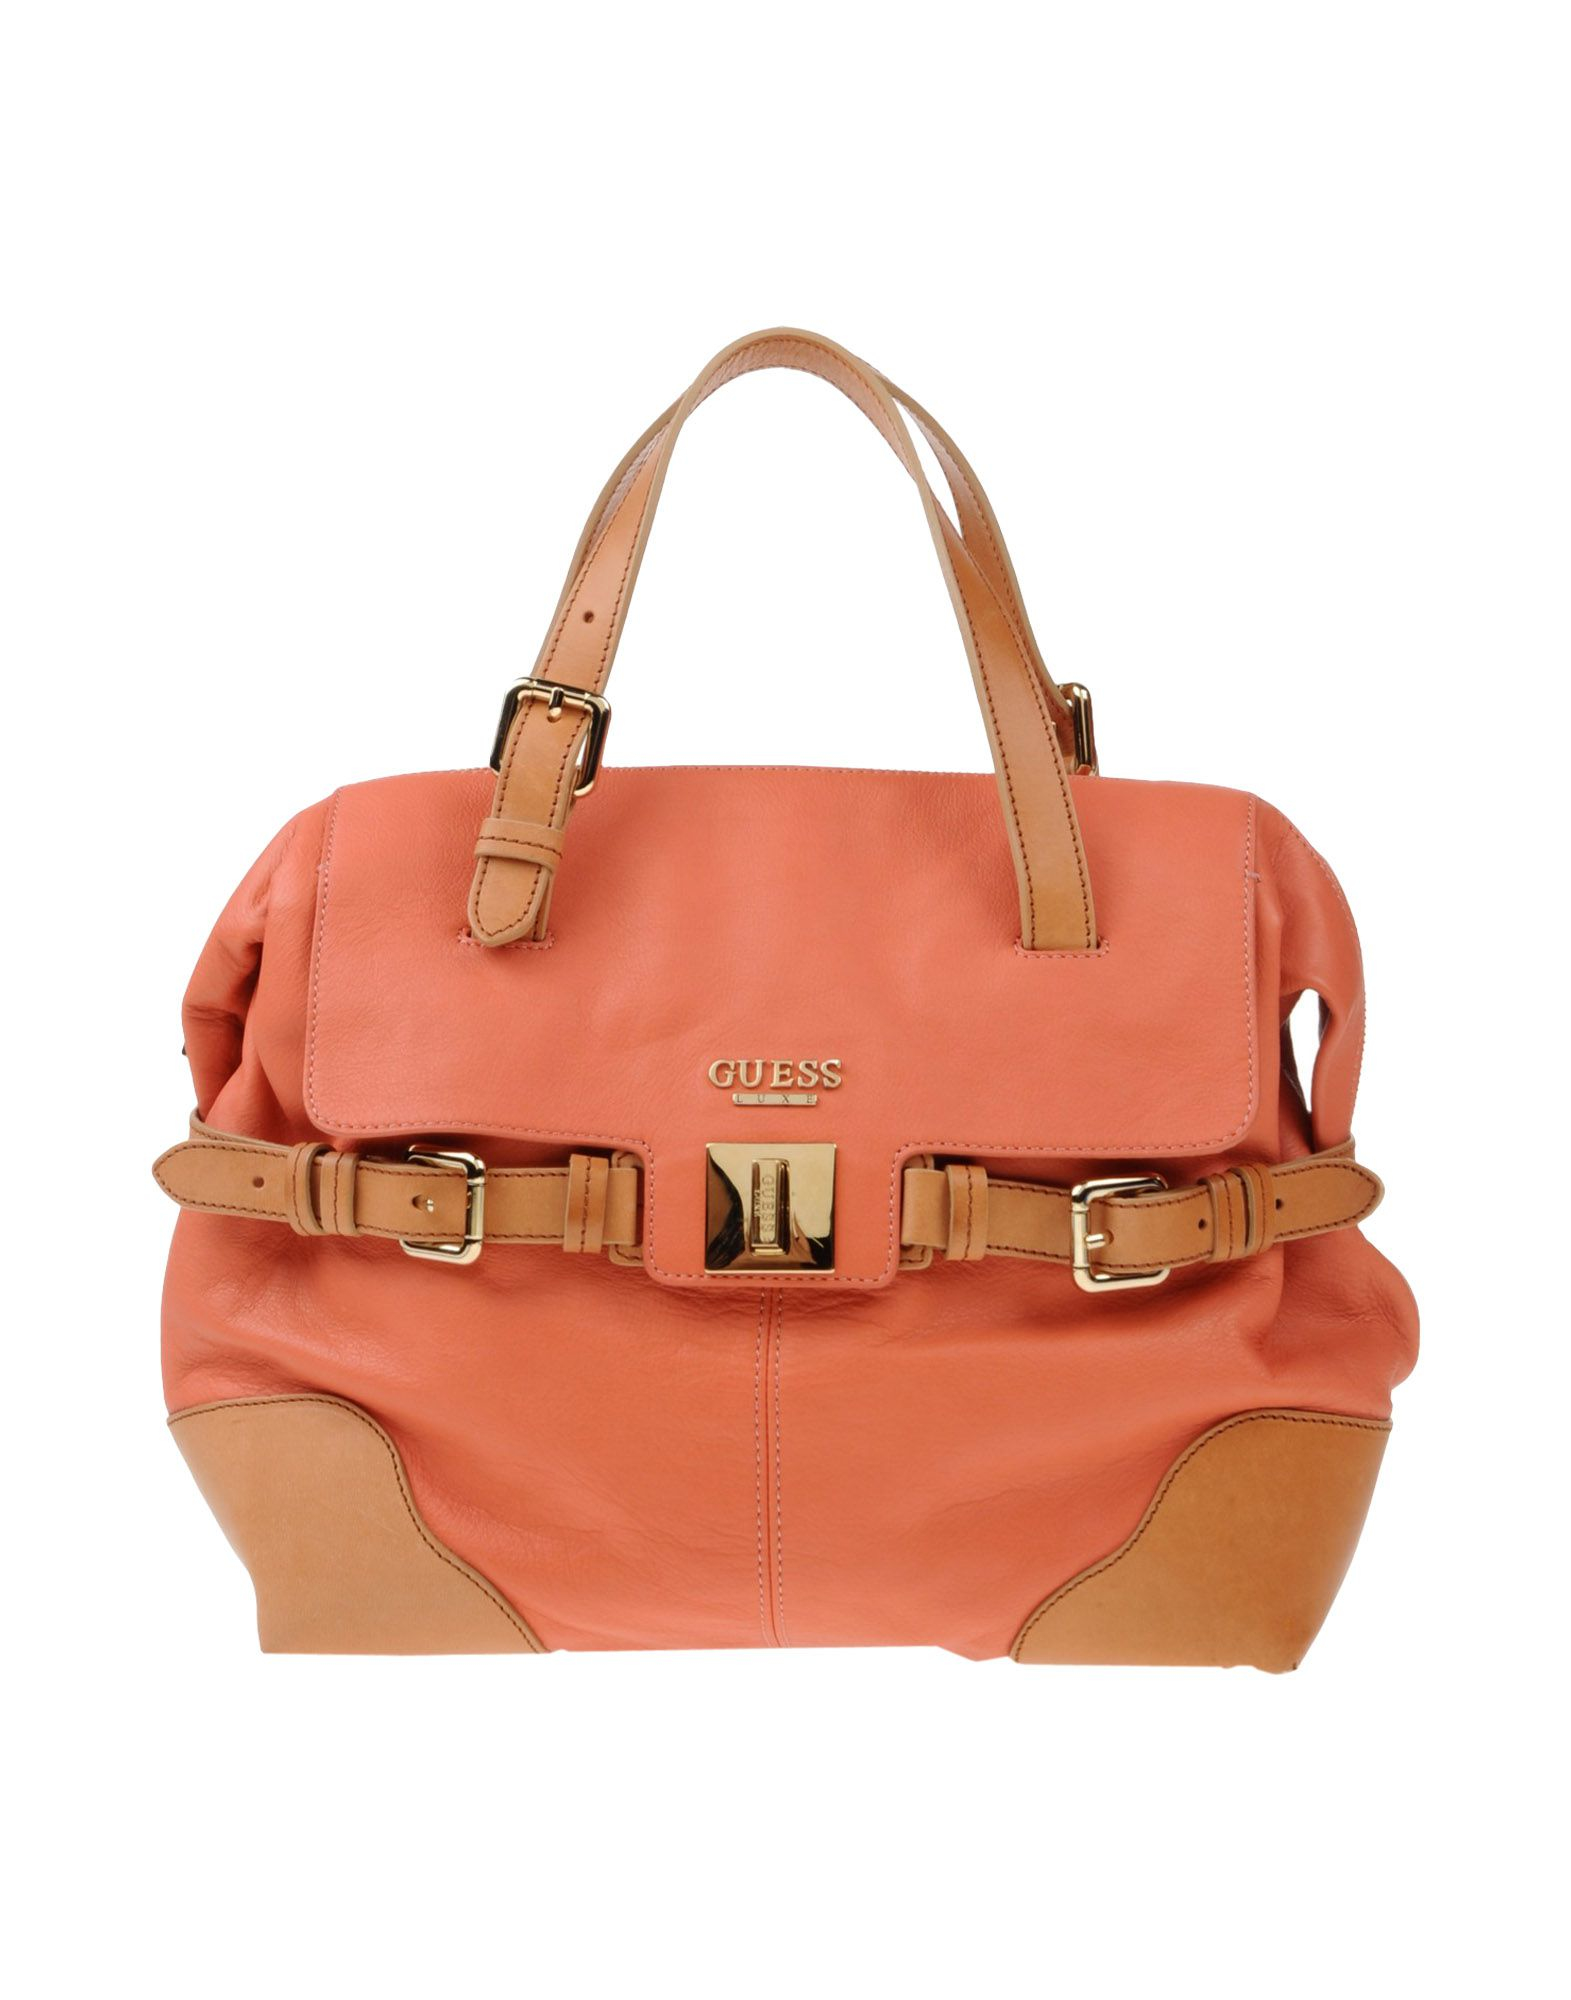 Guess Handbag In Pink Coral Lyst